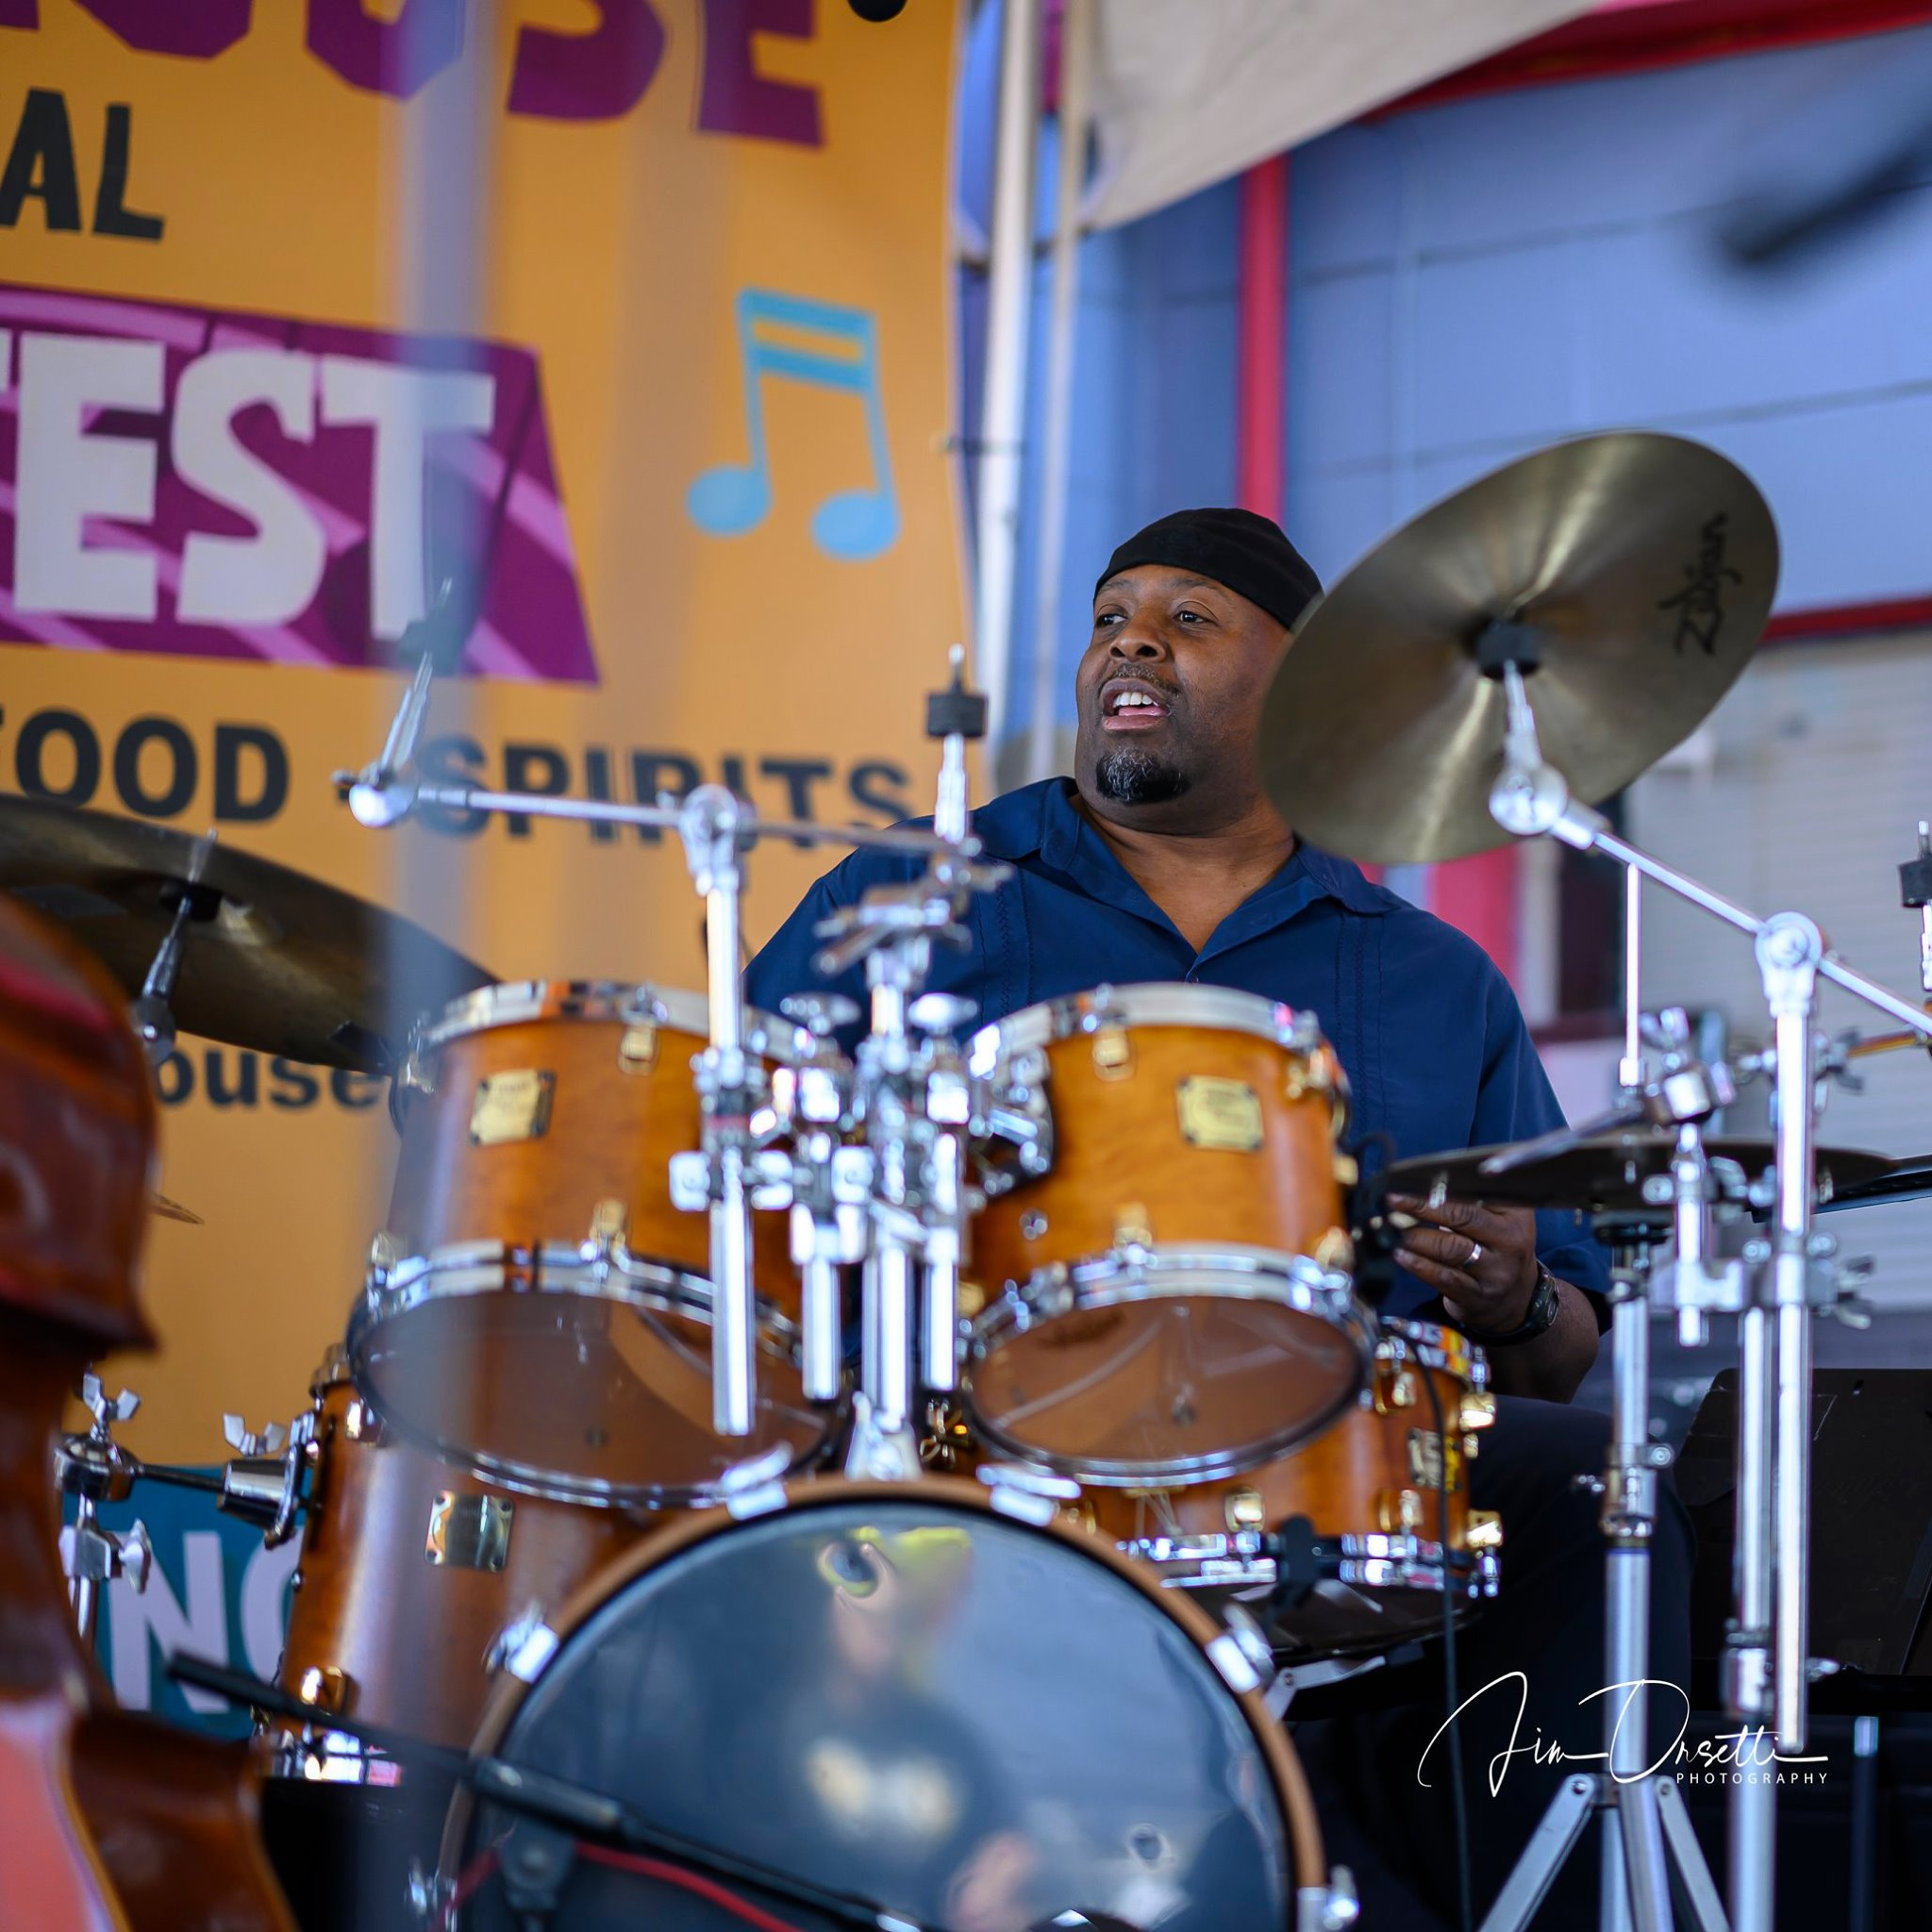 Rob Rhodes at the 2nd Annual 7 Mile House Jazz Fest 2019